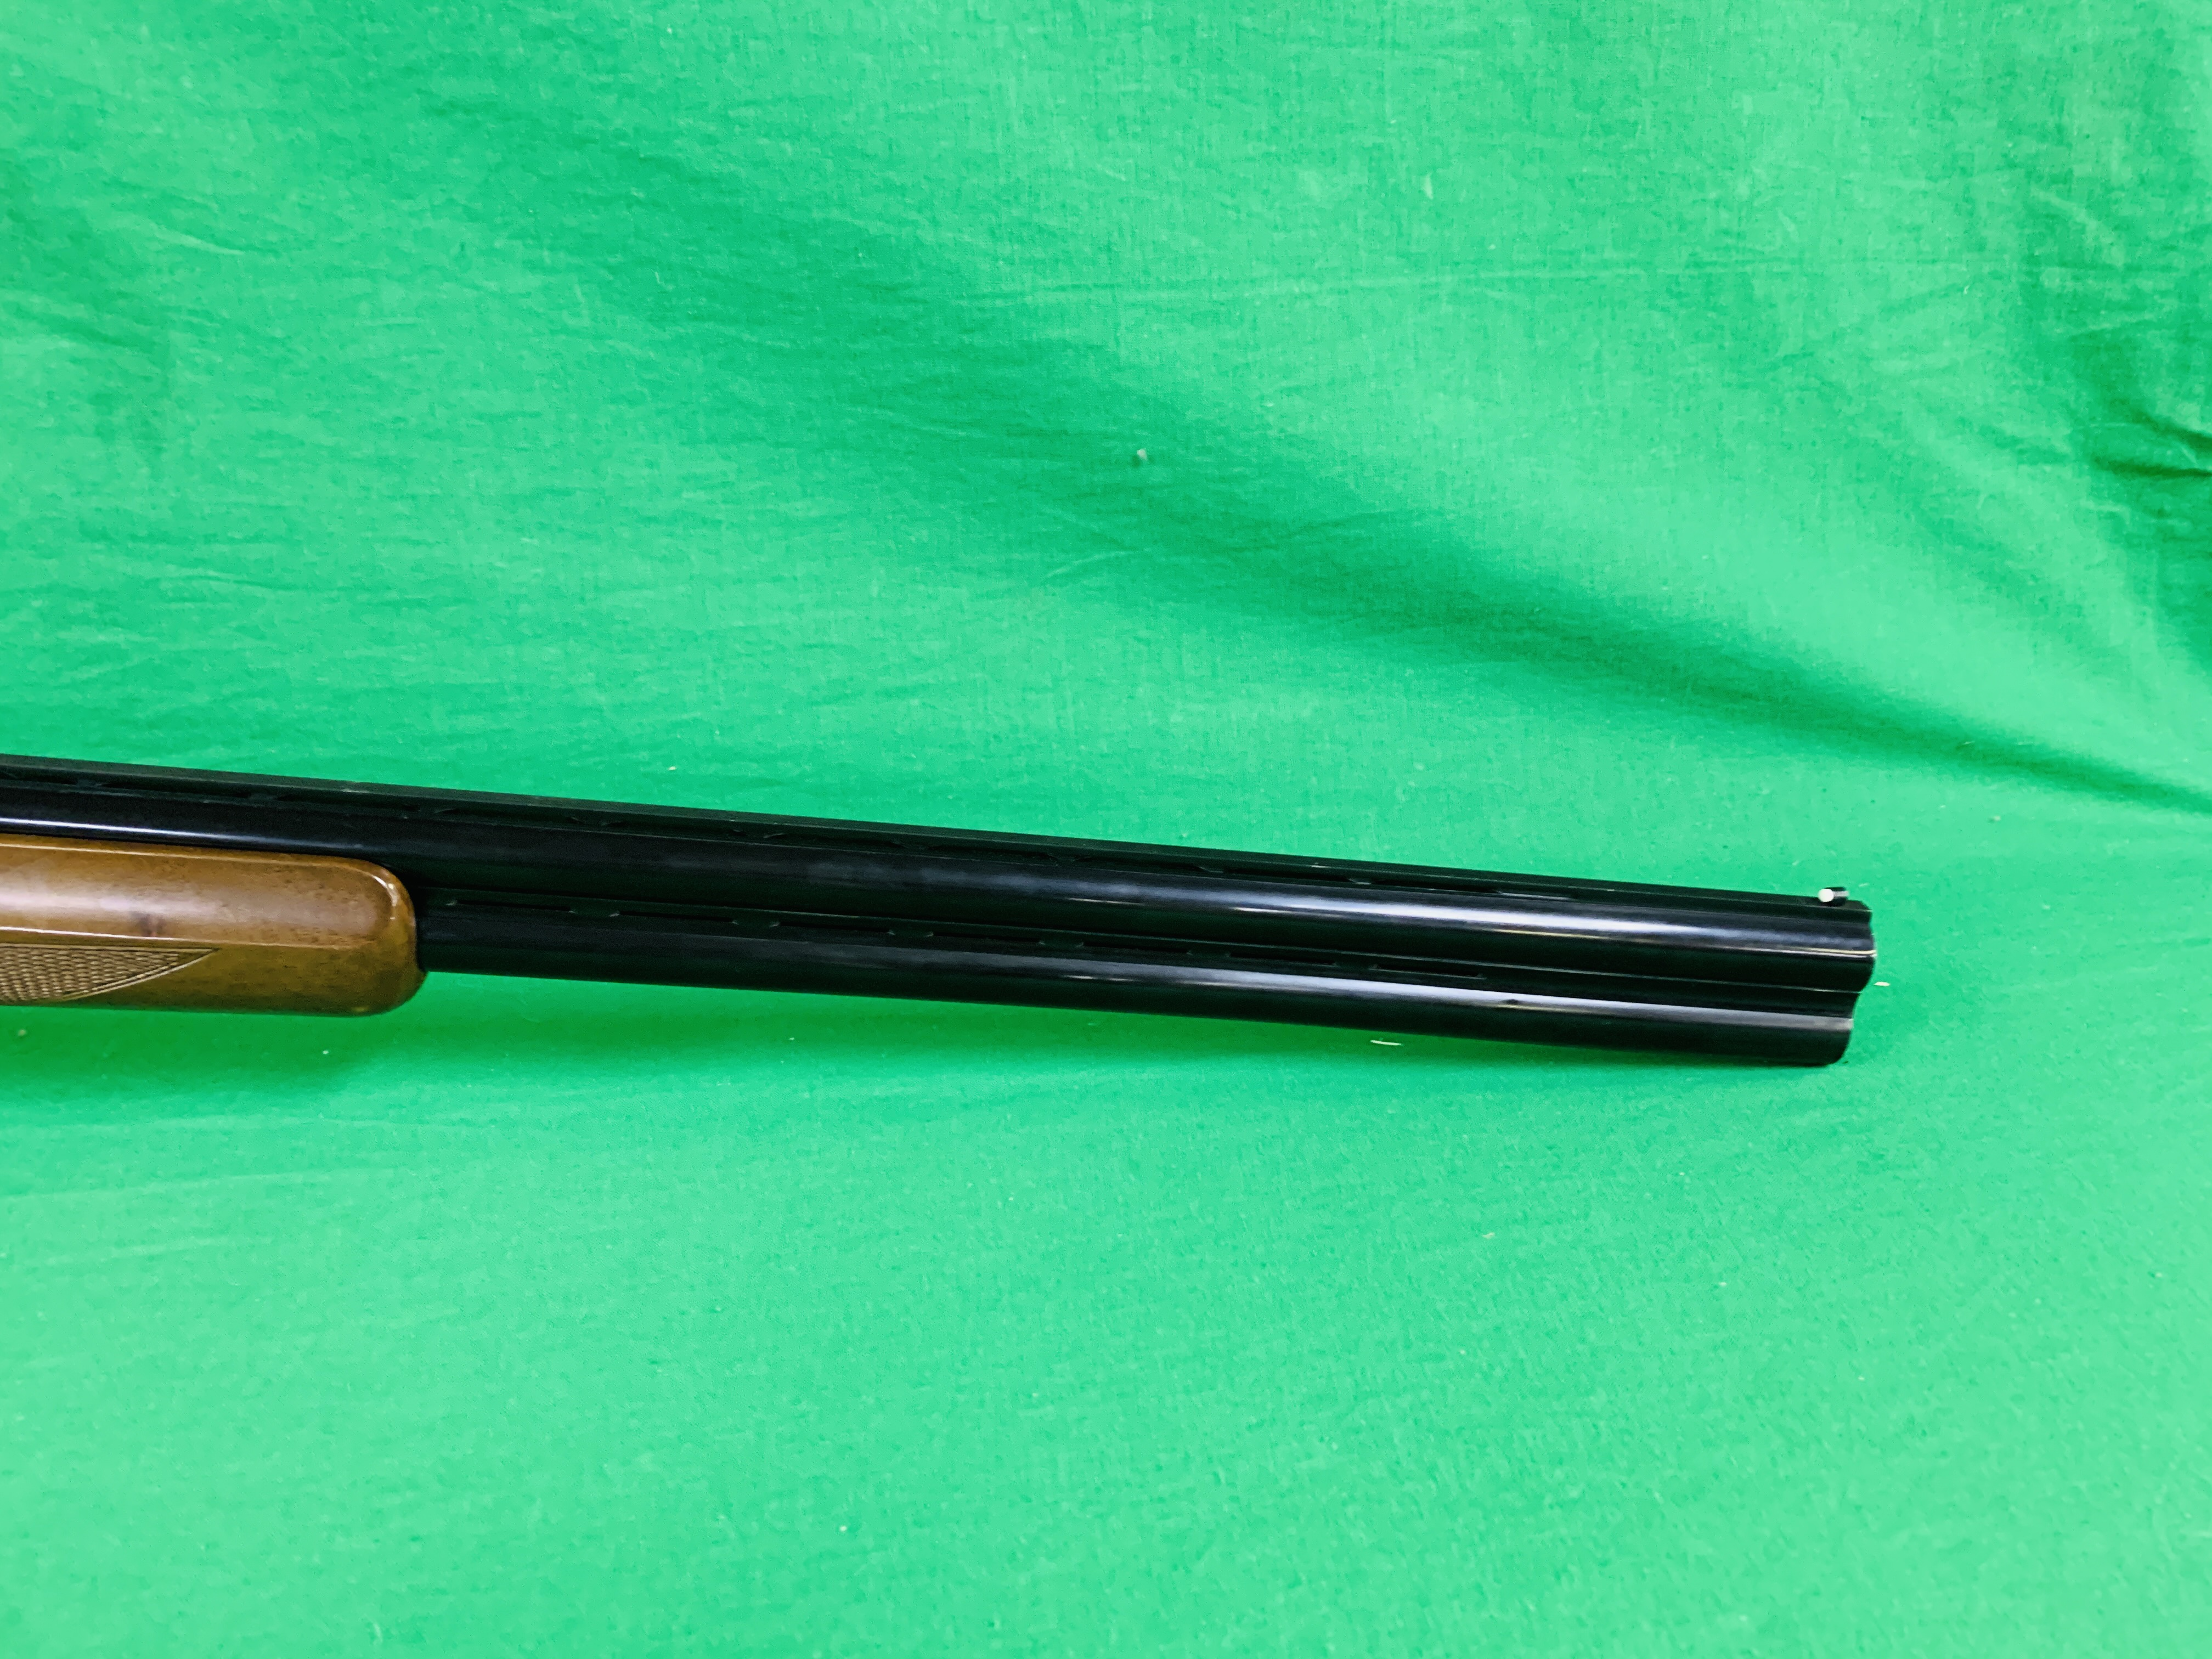 ZAFER MODEL 01612 12 BORE OVER AND UNDER SHOTGUN # 01483, SELECTABLE SINGLE TRIGGER, NON EJECTOR, - Image 6 of 8